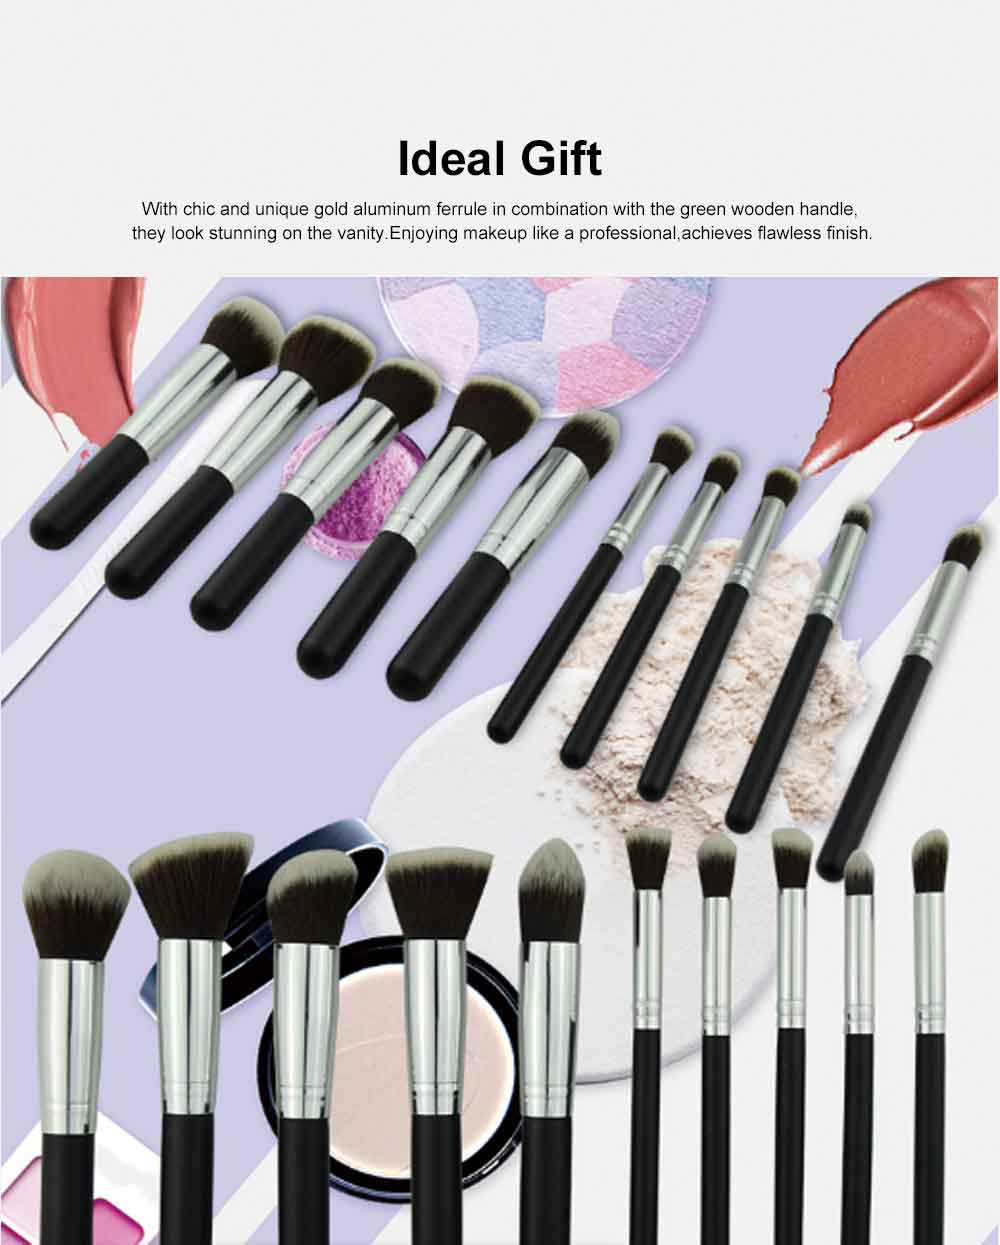 10 PCS Makeup Brushes Set, Multifunctional Wooden Handle with Thickened Aluminum Tube,  Cosmetic Tools for Women 4